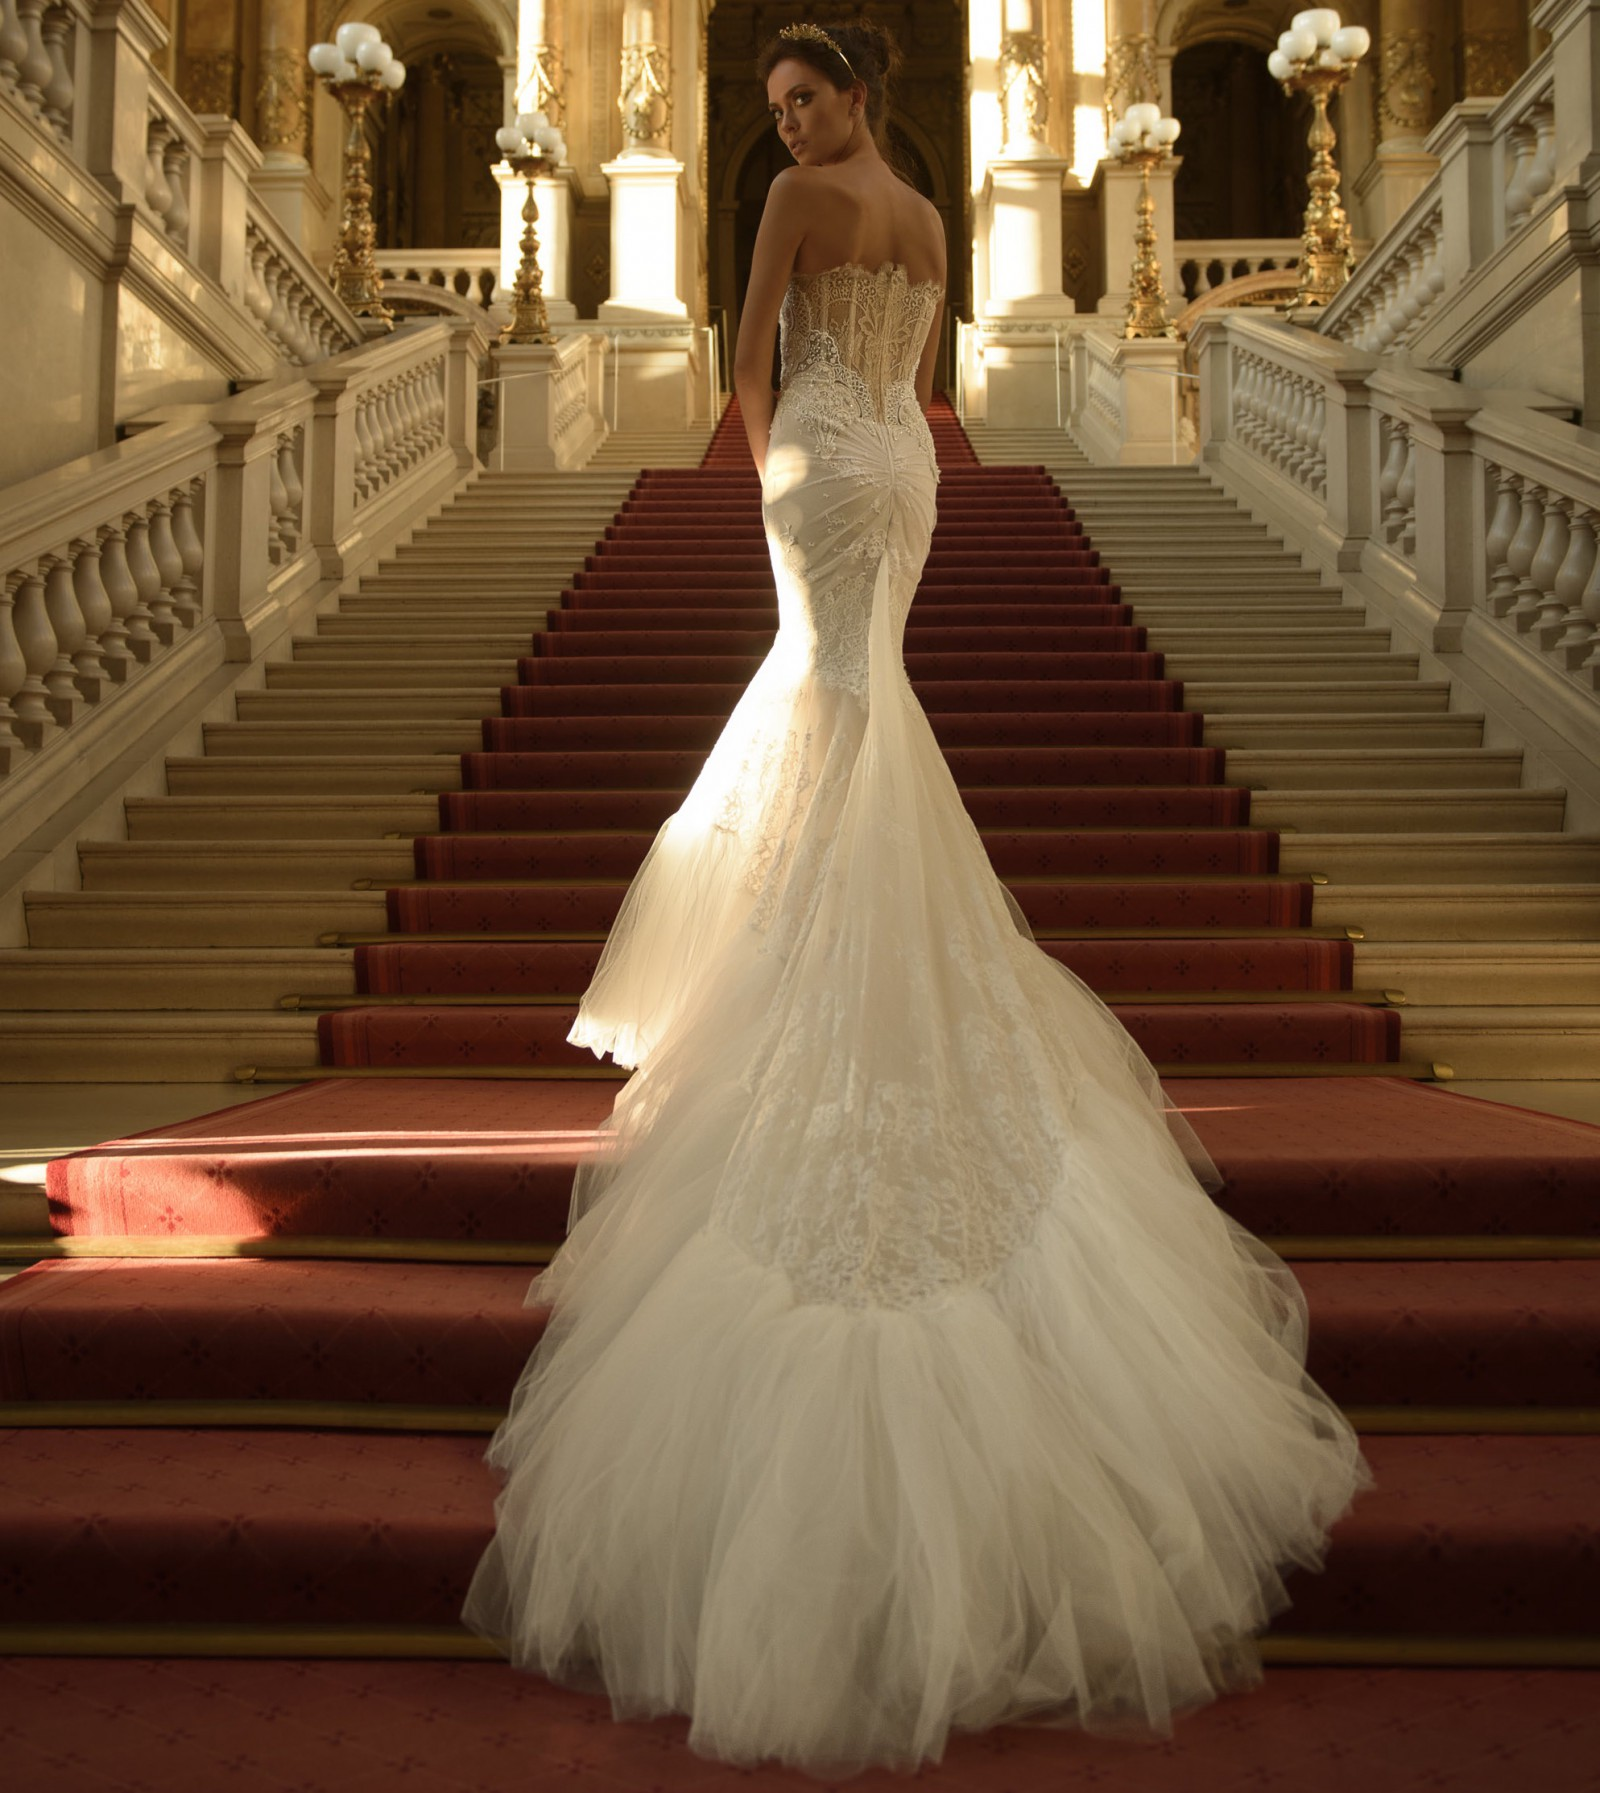 Haute Couture Wedding Gown: Ester Haute Couture Used Wedding Dress On Sale 50% Off